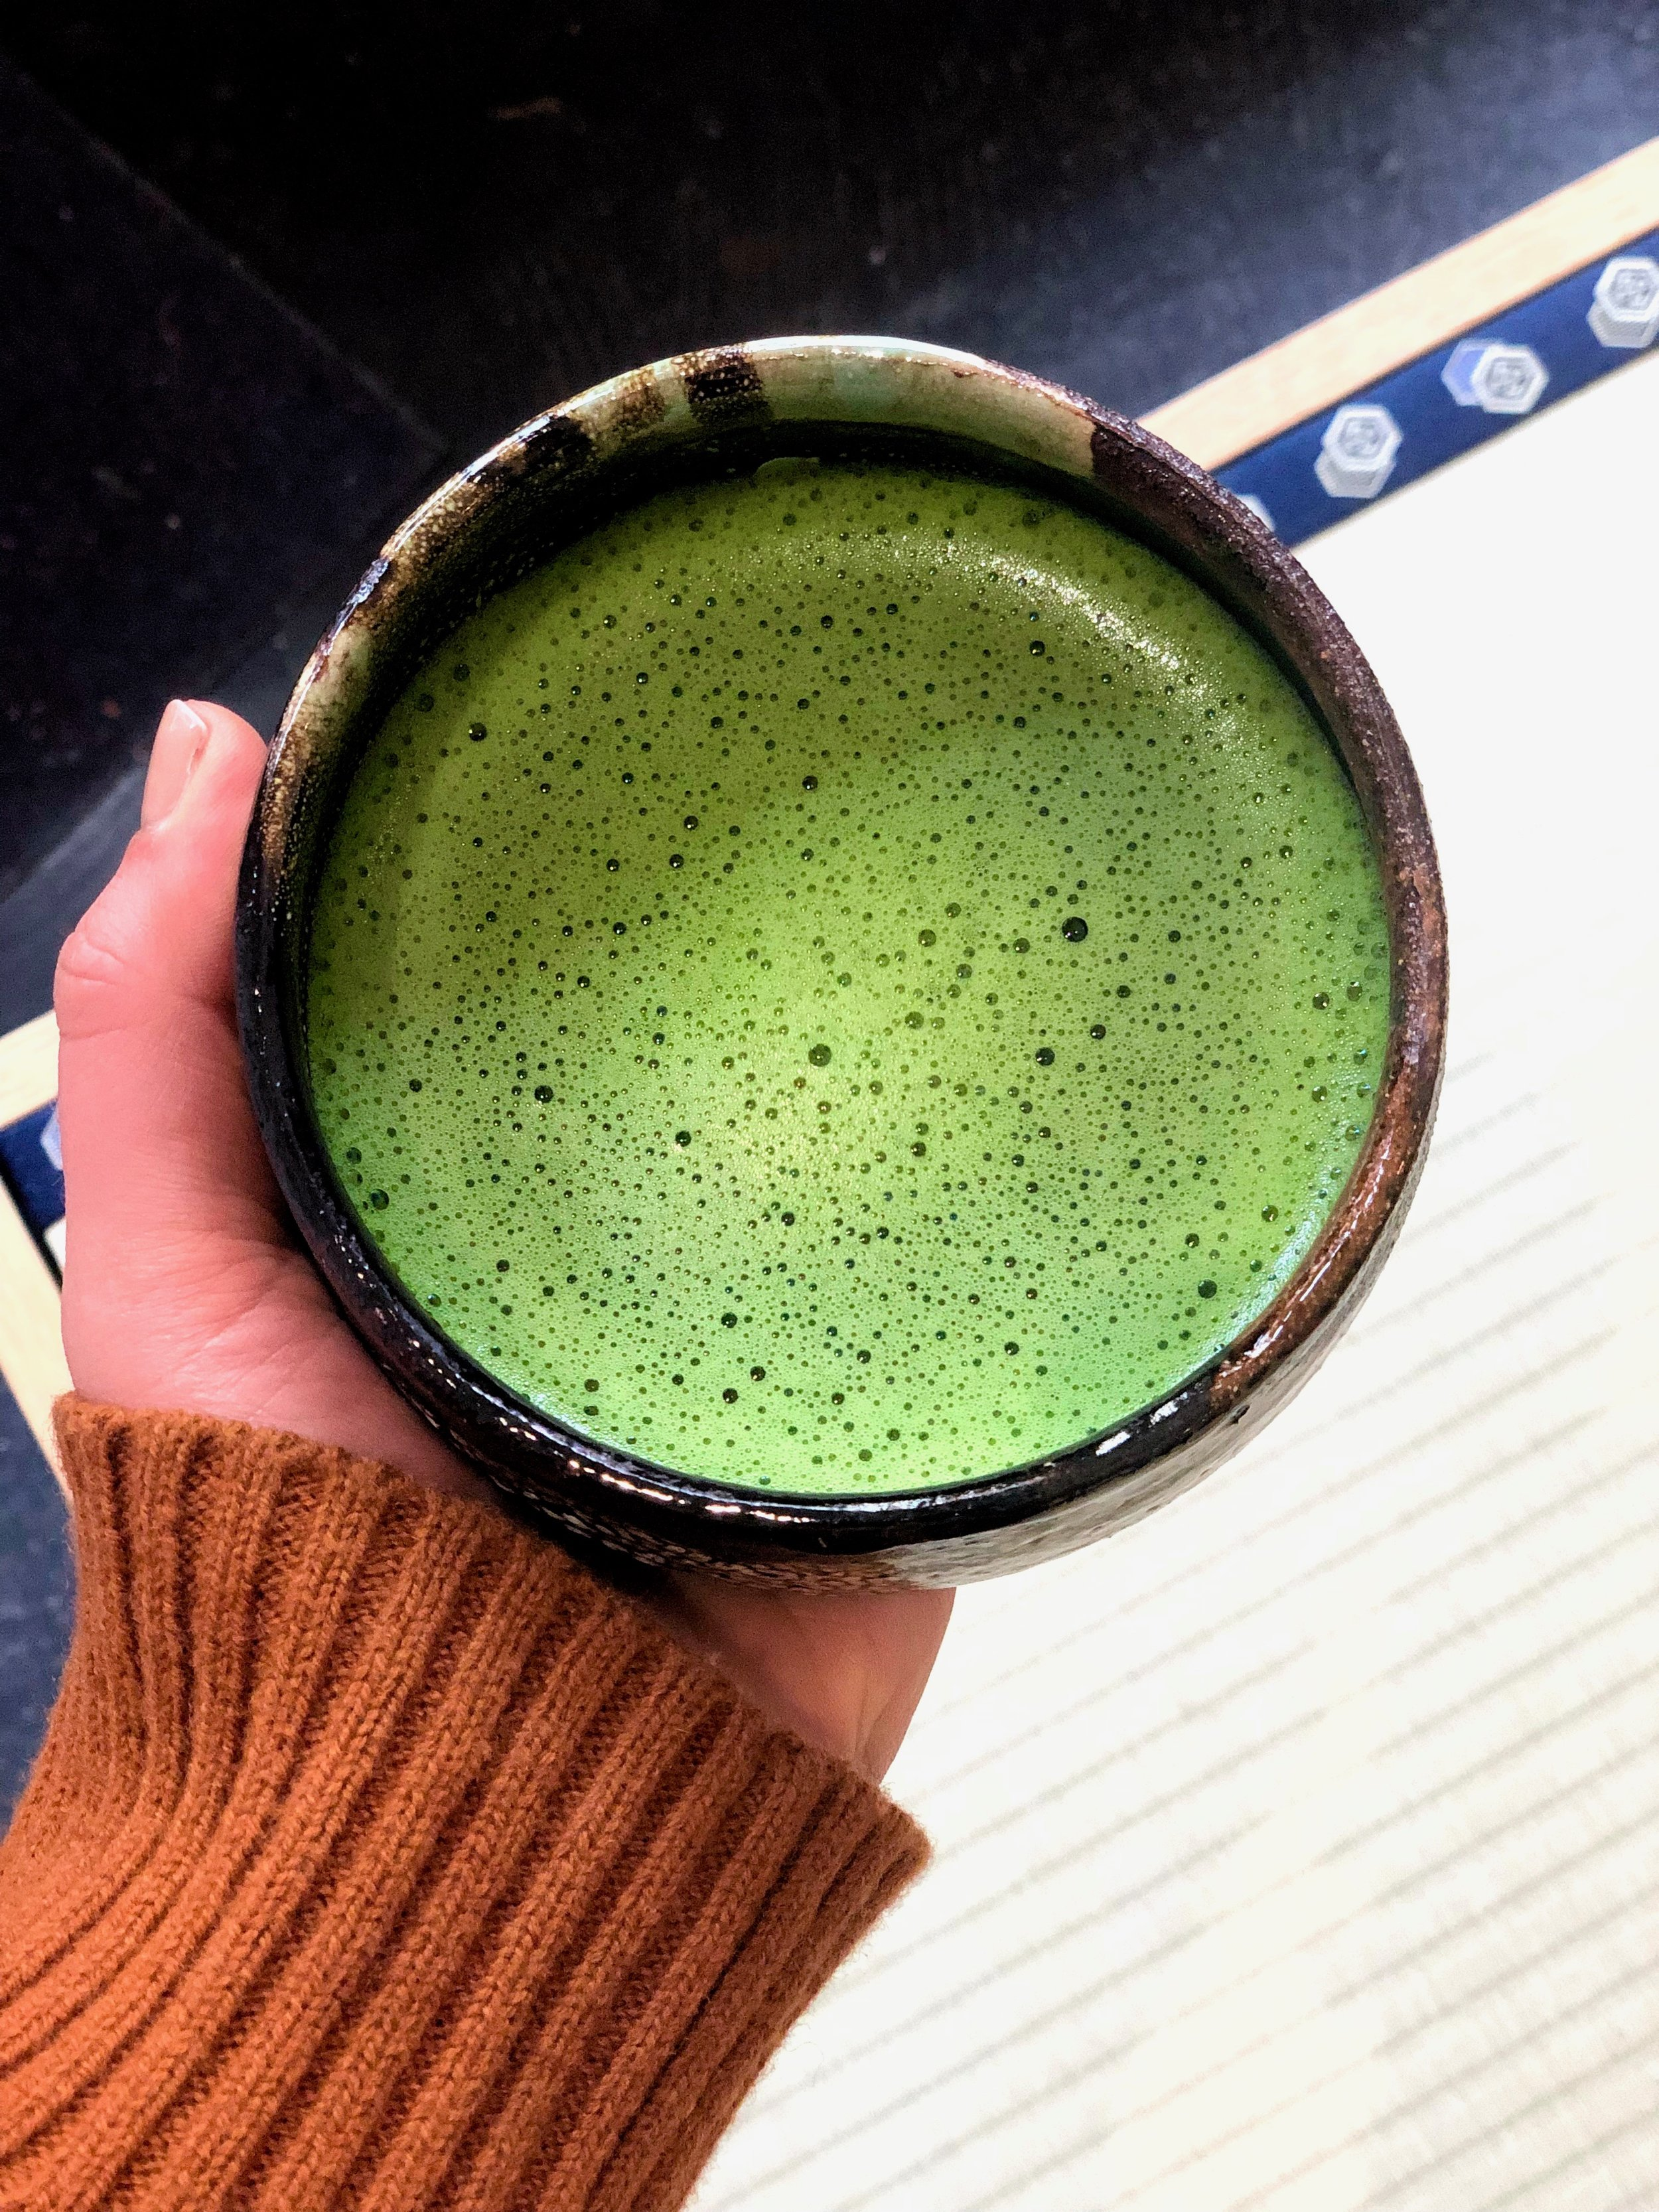 Bright green cup of matcha